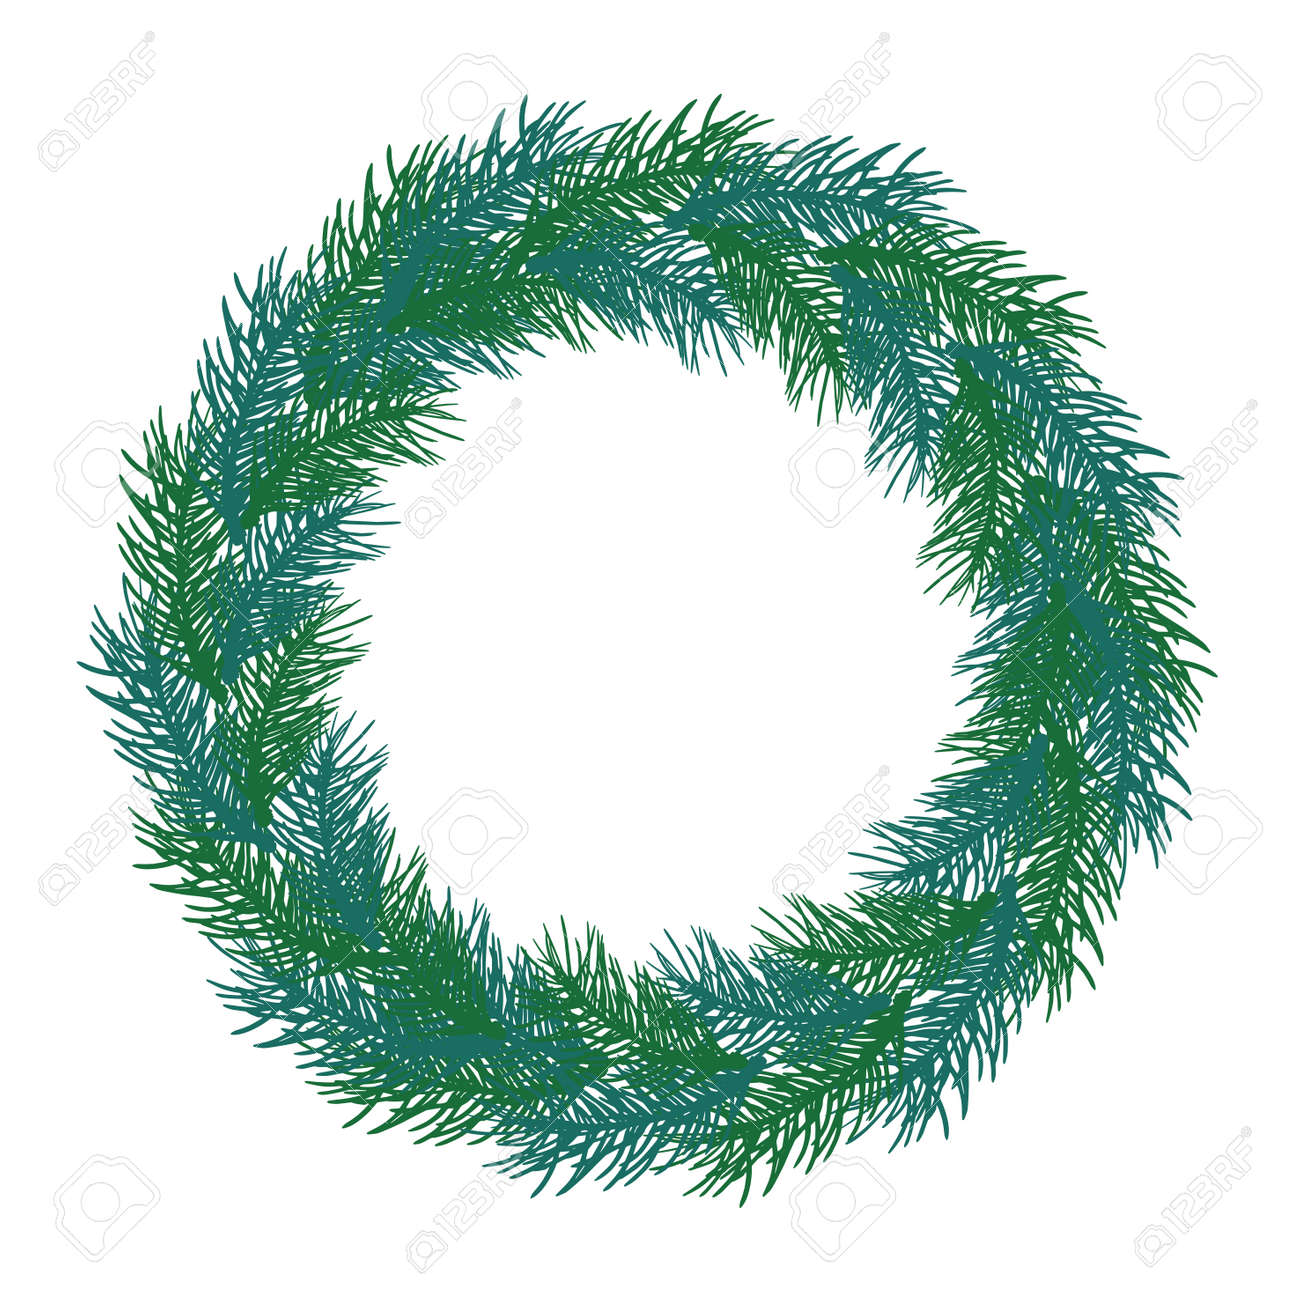 Wreath of branch fir tree. Circle frame, isolated. Vector illustration. - 164644795